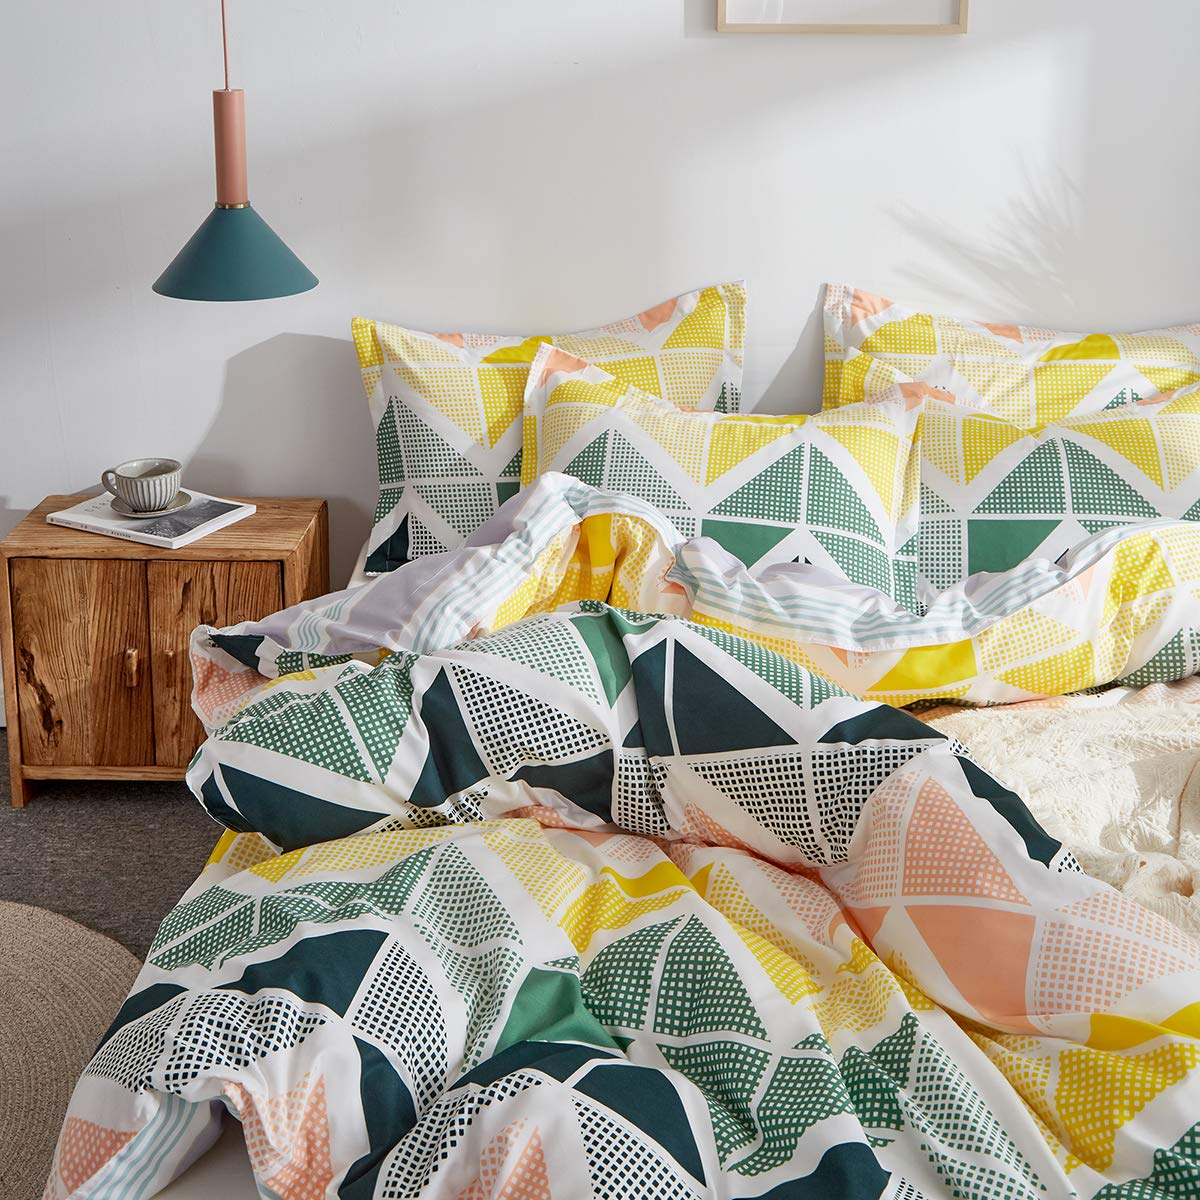 Not a Comforter Uozzi Bedding 3 Pieces Colorful Duvet Cover Set Queen Green Navy Yellow Orange Cubes Pattern Microfiber Comforter Cover with Ties and Zipper Morden Style Adult 3PC Bedding Set